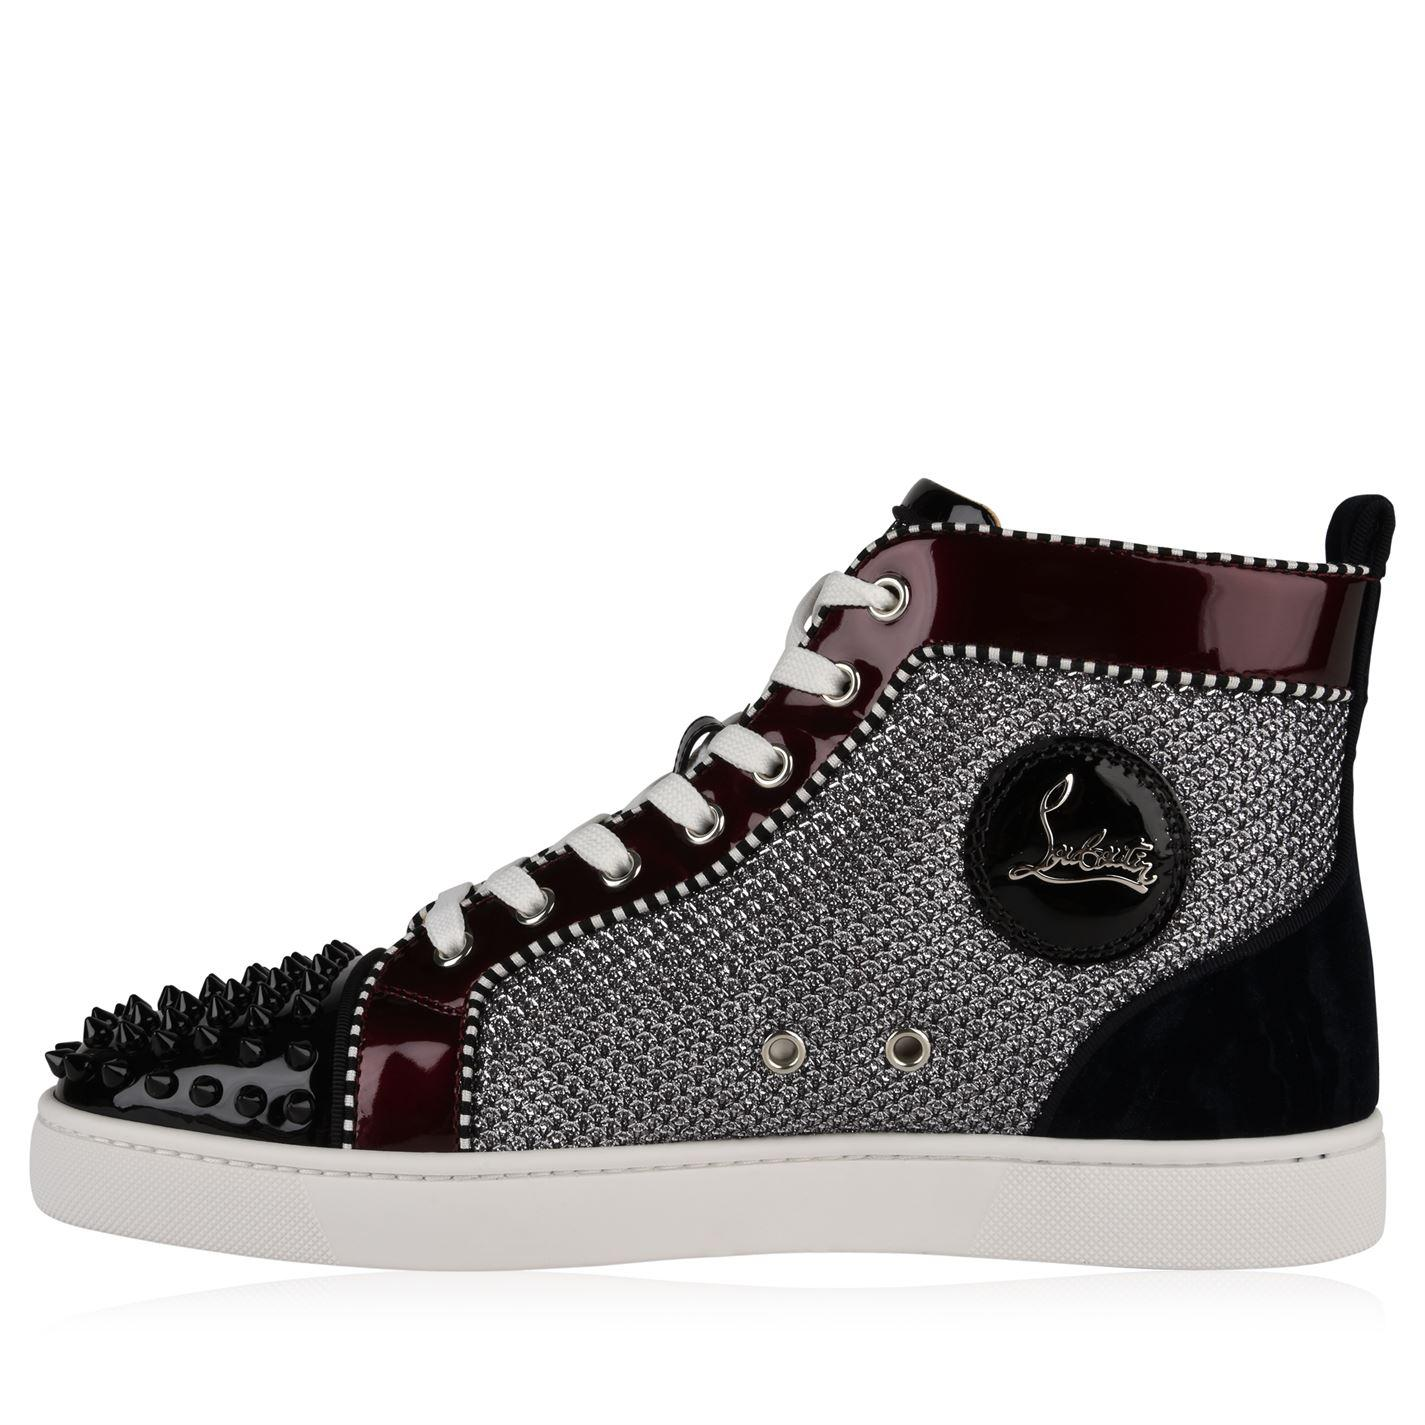 258f3876f376 Christian Louboutin Spikes Orlato Patent Glitter High Top Trainers ...